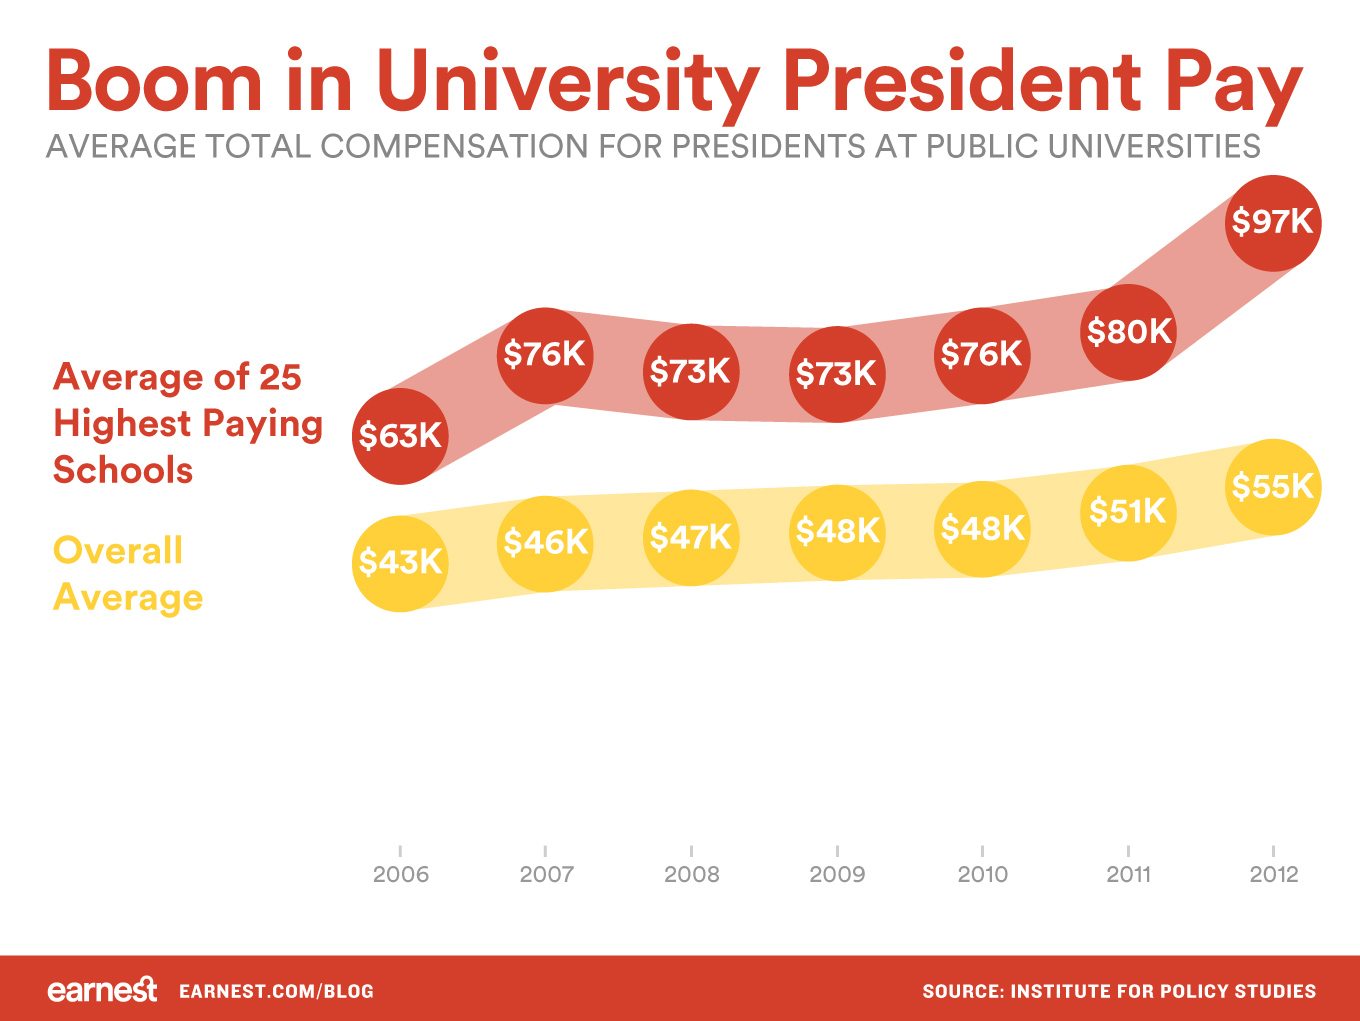 boom-in-university-president-pay-1